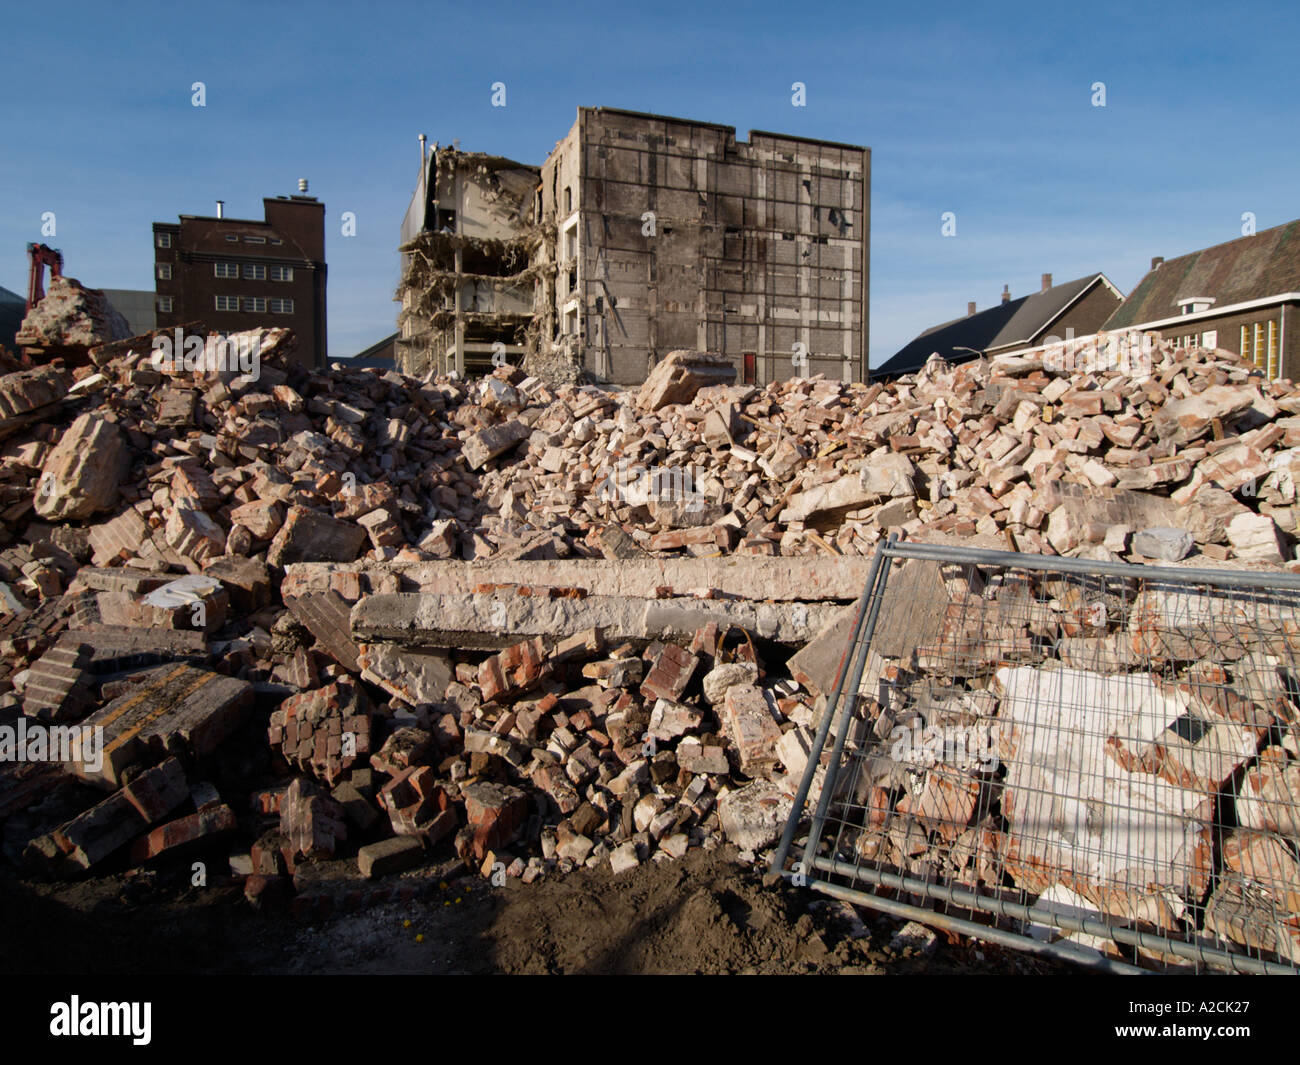 Economy the Oranjeboom Inbev building is being demolished as production is being centralized elsewhere - Stock Image